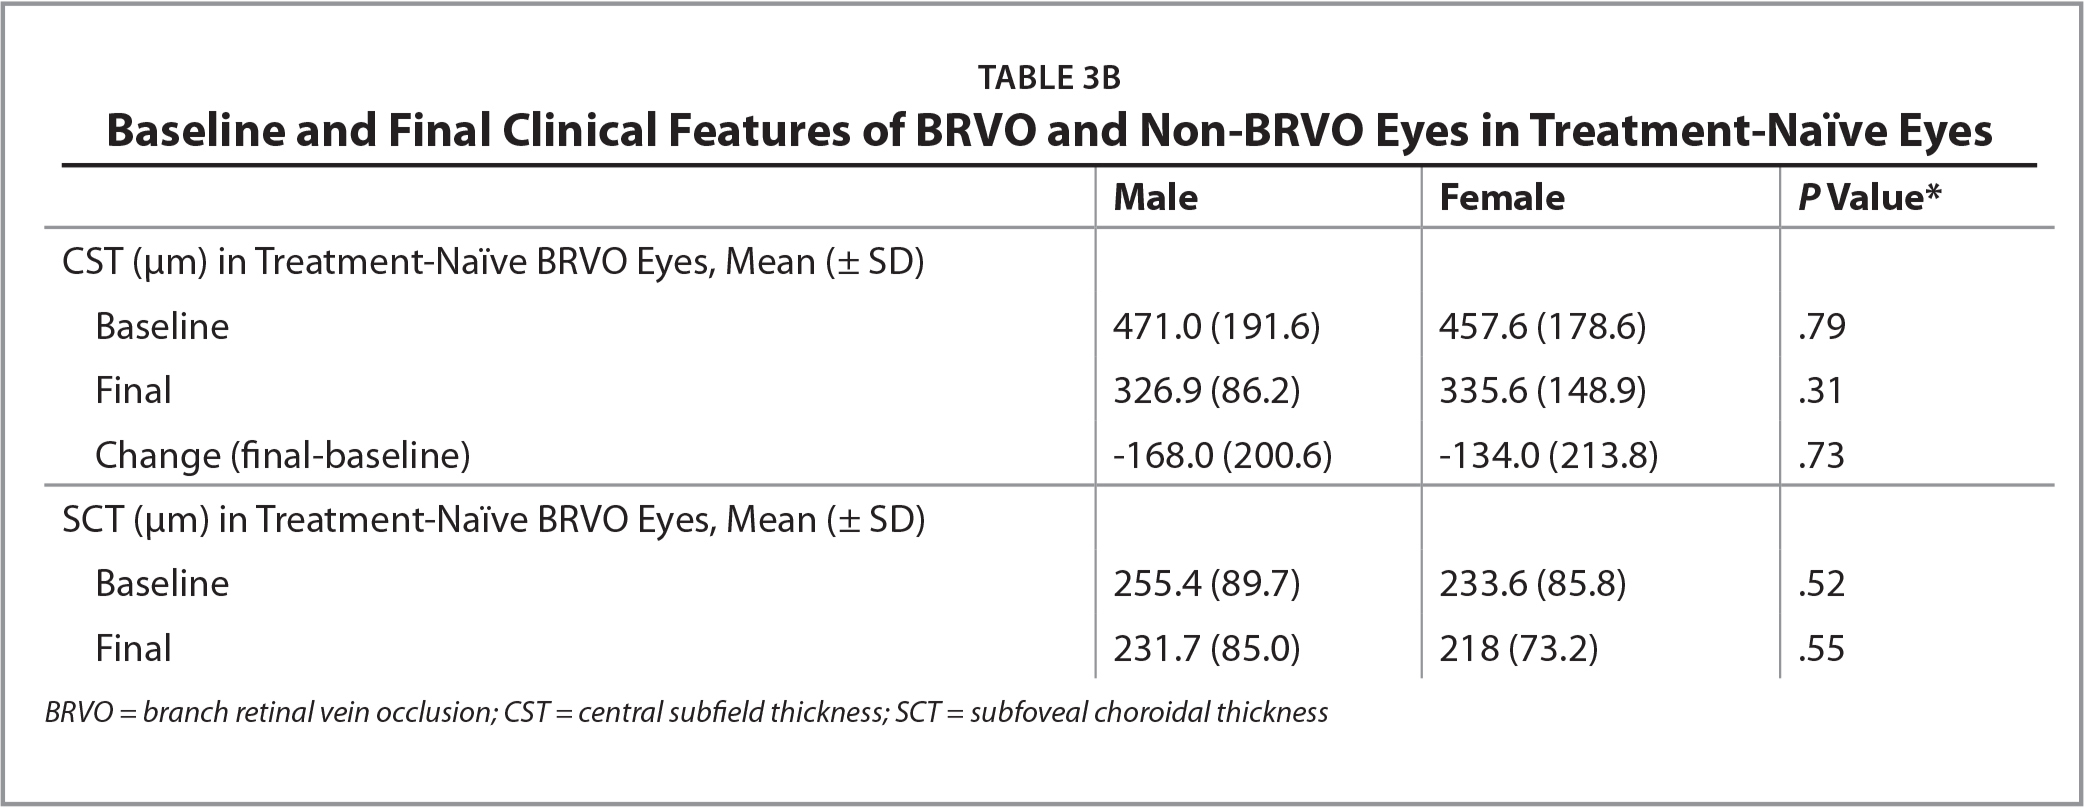 Baseline and Final Clinical Features of BRVO and Non-BRVO Eyes in Treatment-Naïve Eyes